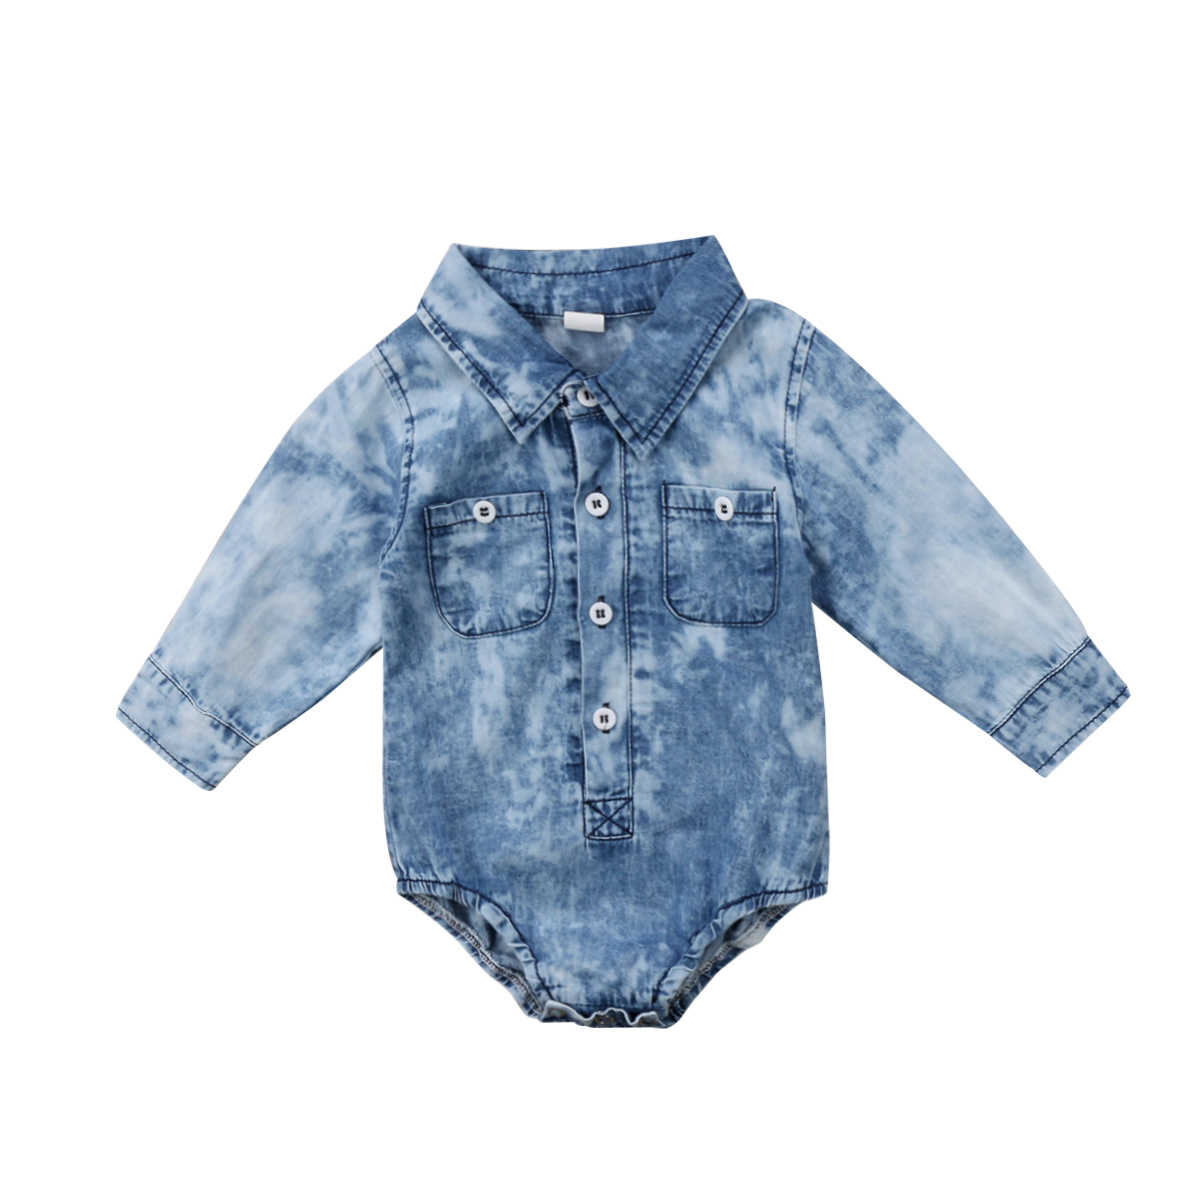 f73dae08cf9d Detail Feedback Questions about 2018 Denim Romper Baby Playsuit NEW ...